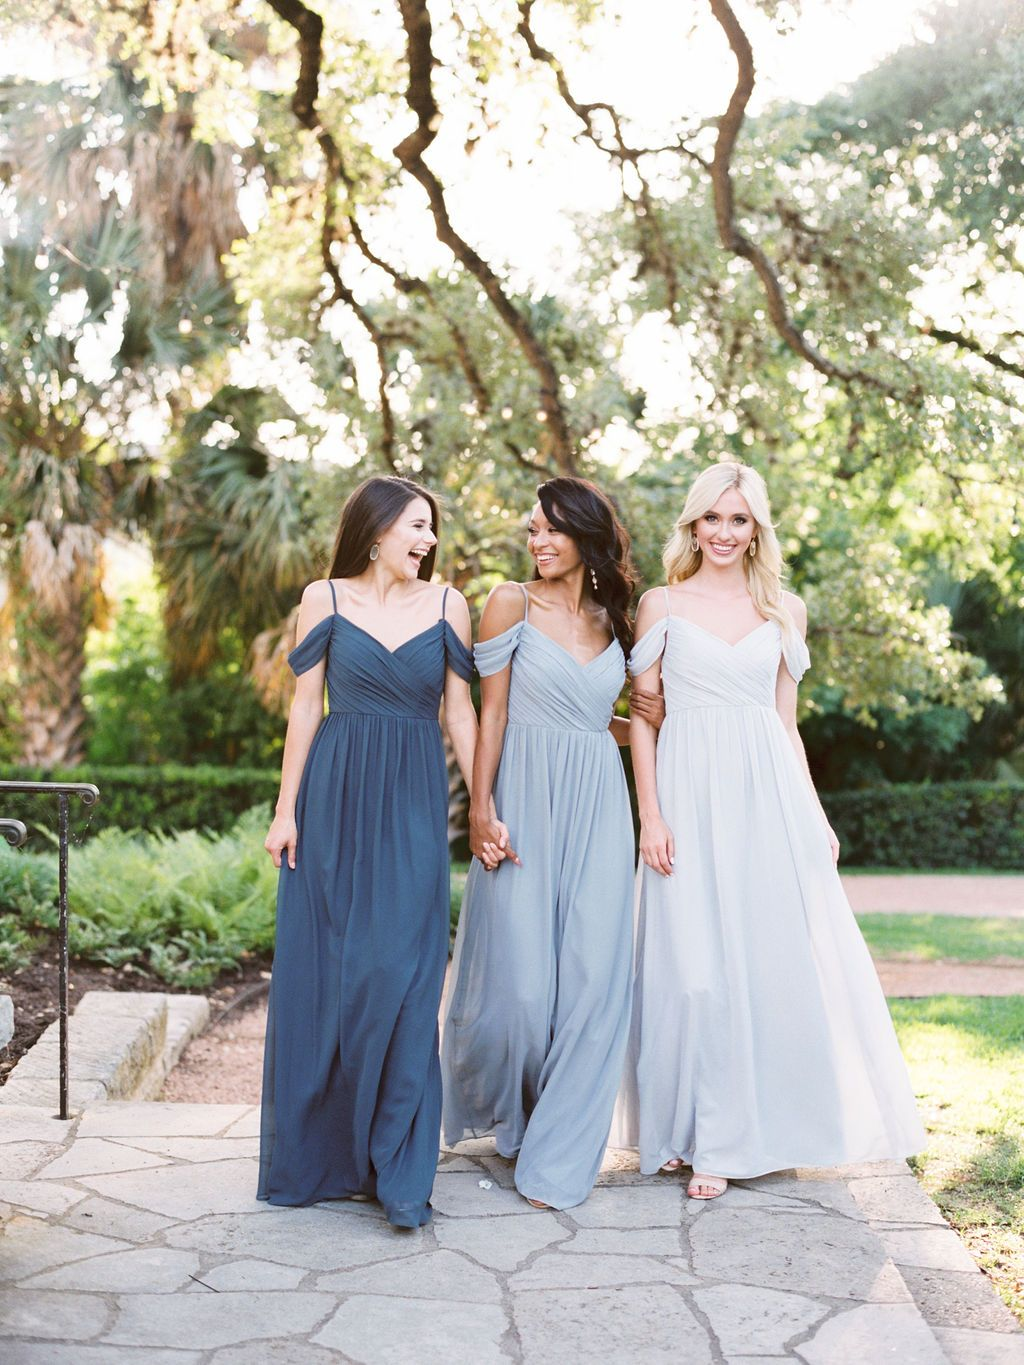 Mix And Match Revelry Bridesmaid Dresses And Separates Revelry Has A Wide Select Bohemian Bridesmaid Dress Bridesmaid Dresses Separates Bridesmaid Dresses Boho